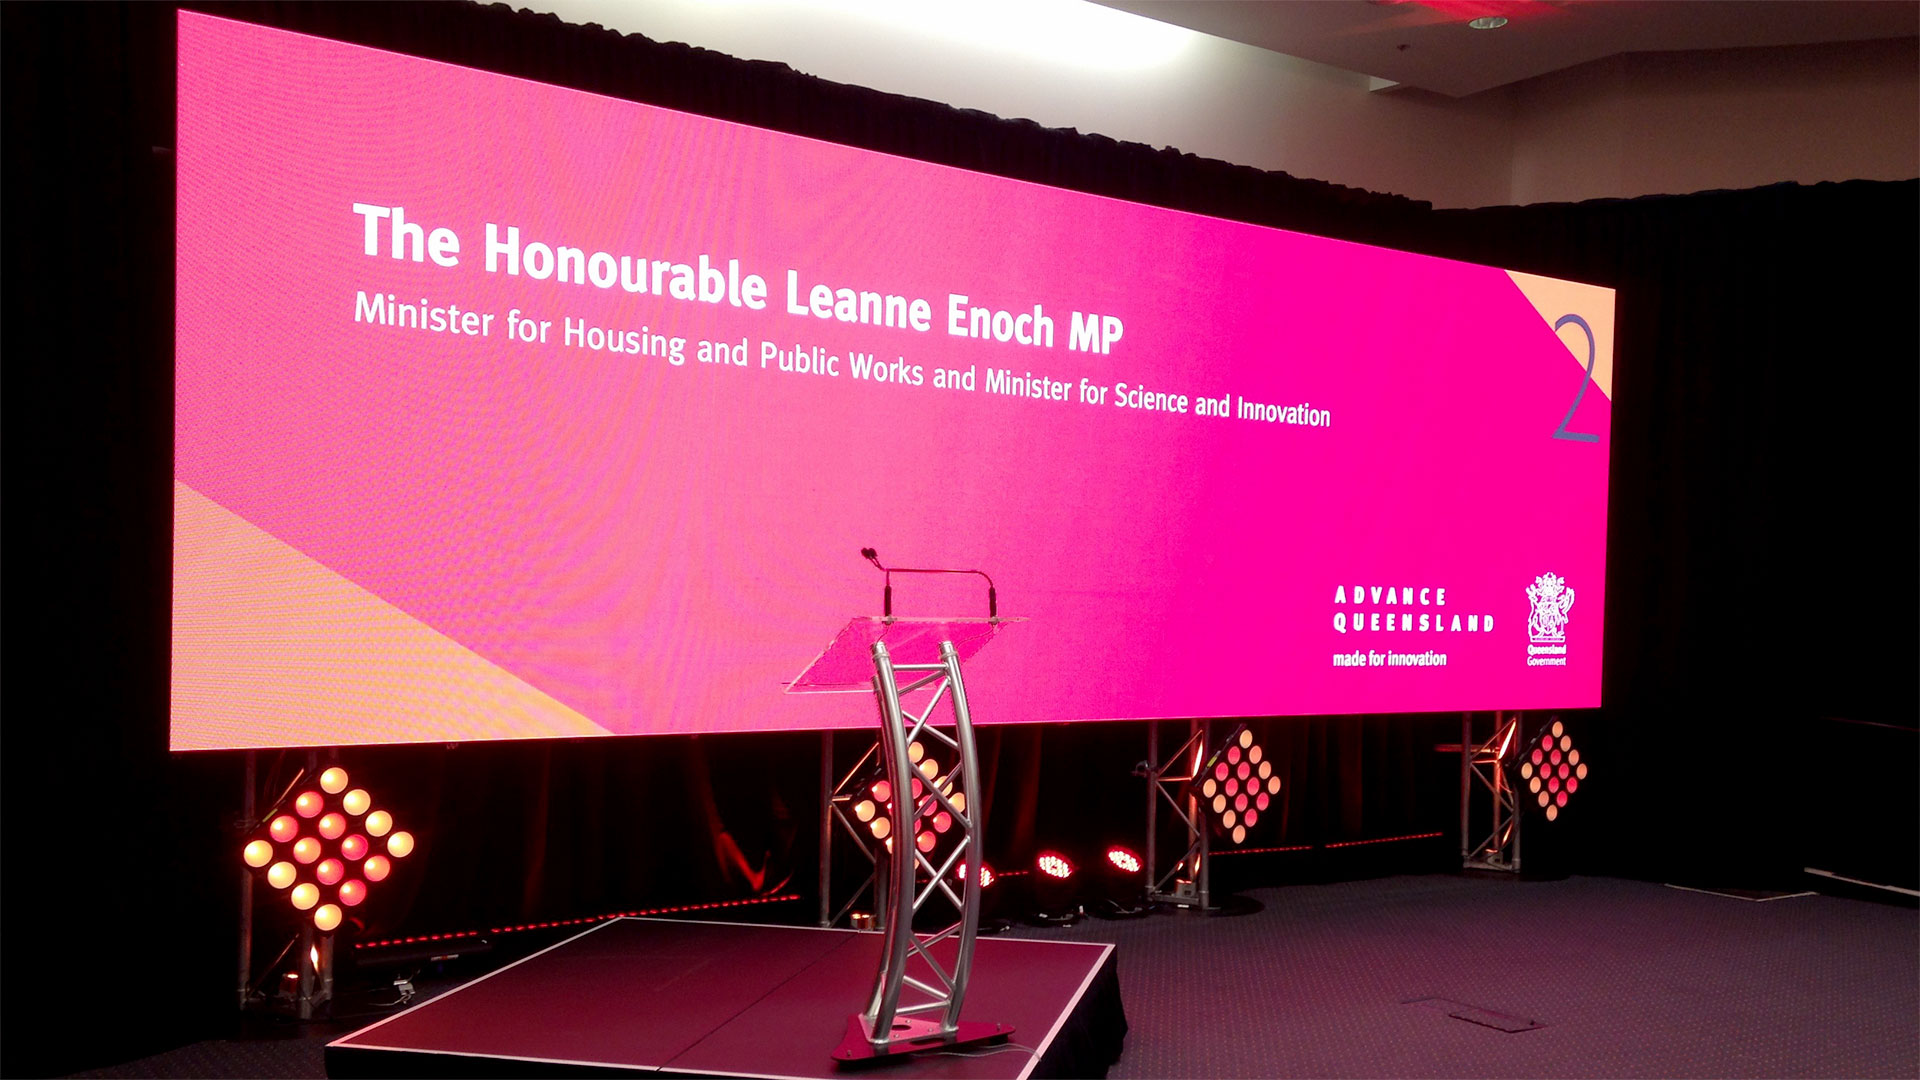 P3.9 Indoor Event Rental LED Screen For Conference